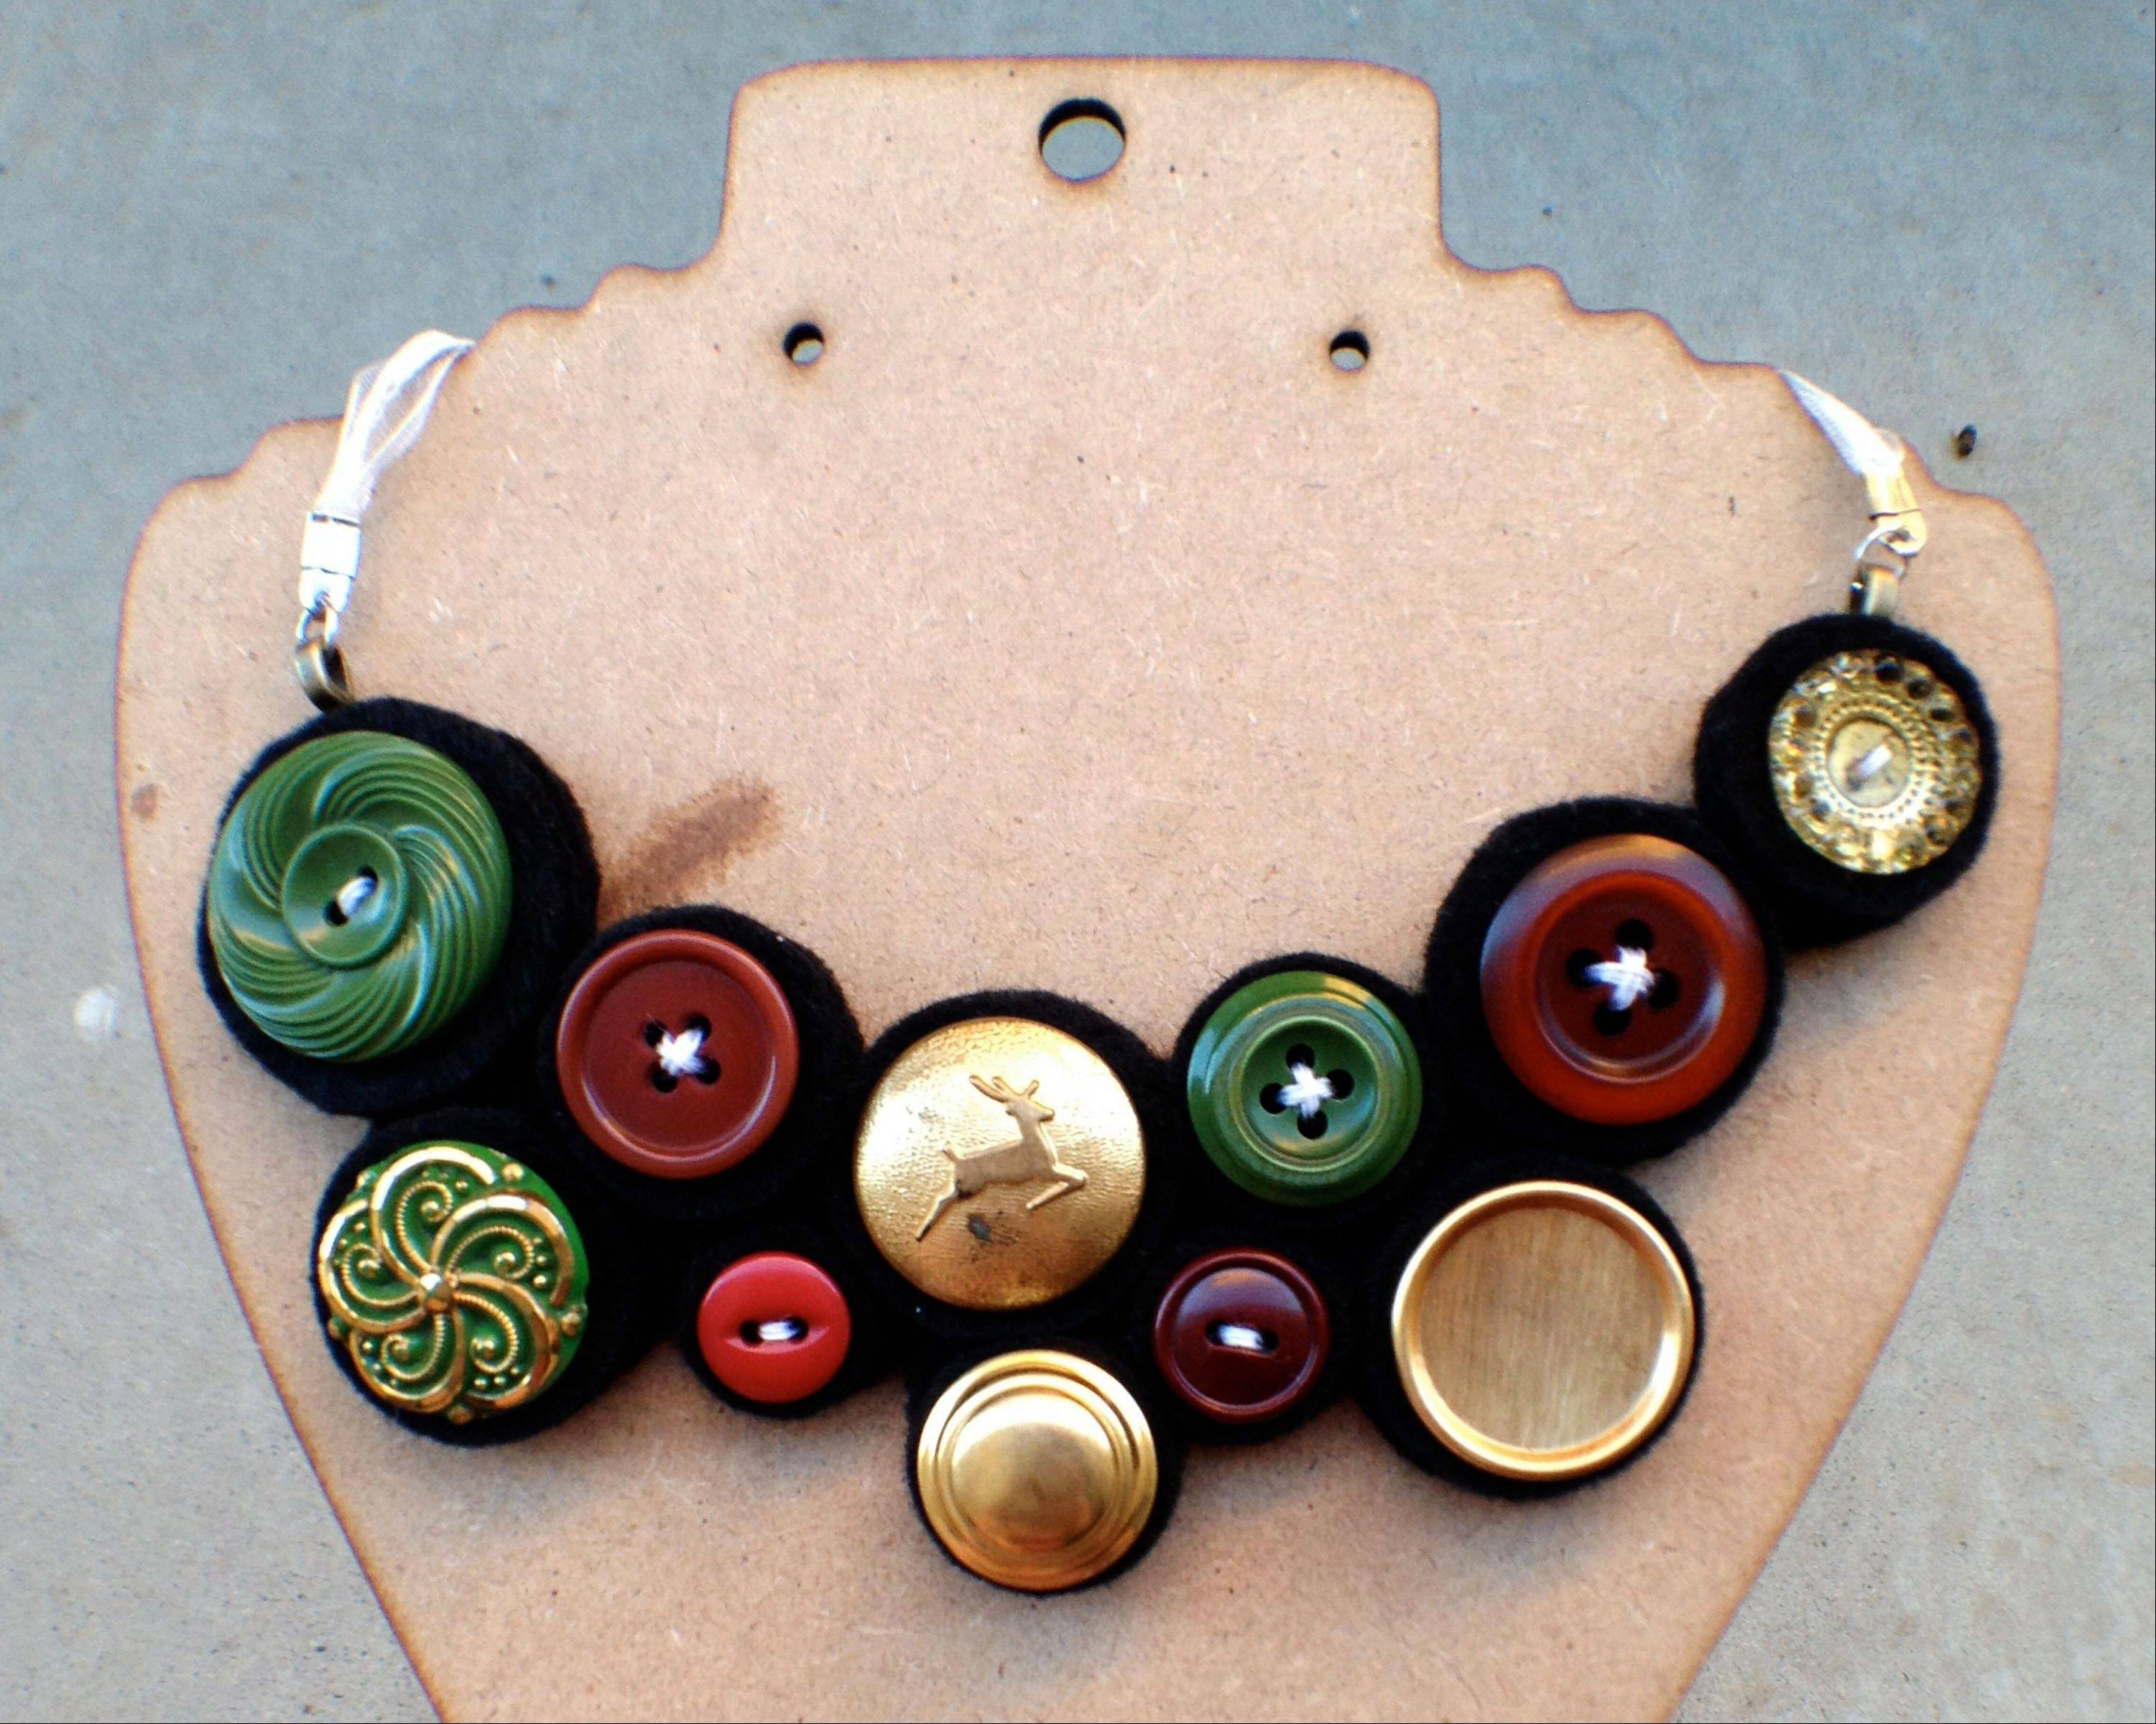 Jenny Chapman would rather craft her own �bubble button bib� necklace than buy it at a store.